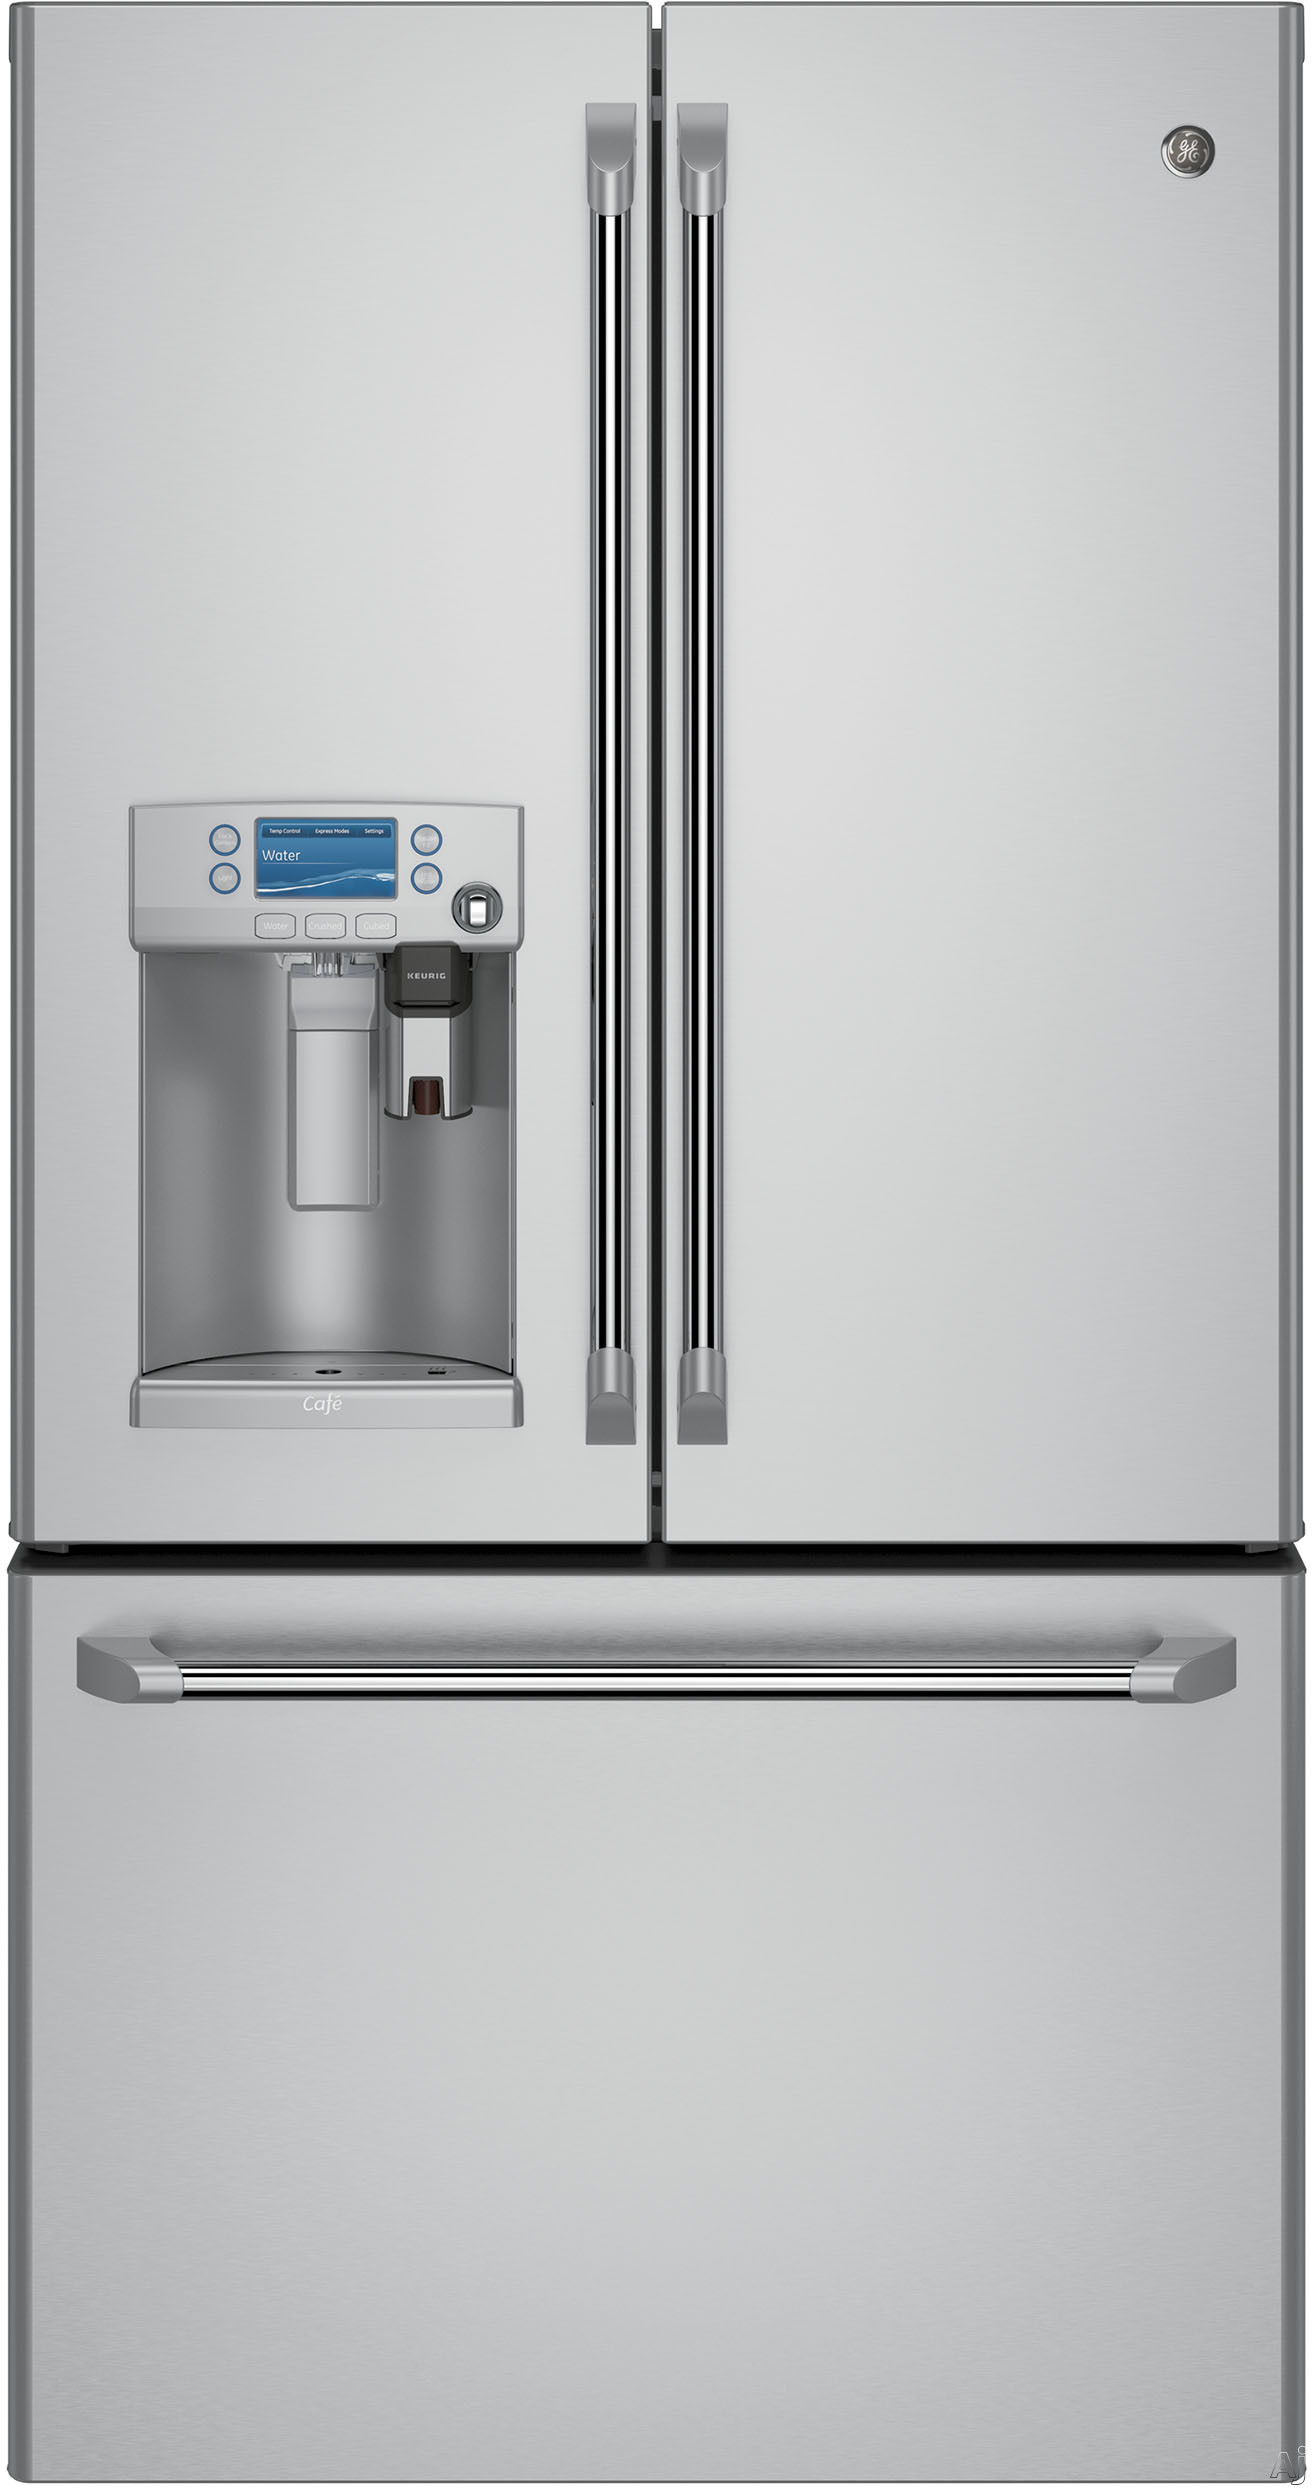 GE Cafe Series CFE28USHSS 36 Inch French Door Refrigerator with Keurig K-Cup® Coffee Brewing System, Precise Fill, Hot Water Scheduling, WiFi Connect, TwinChill™, Spillproof Shelving, Gallon